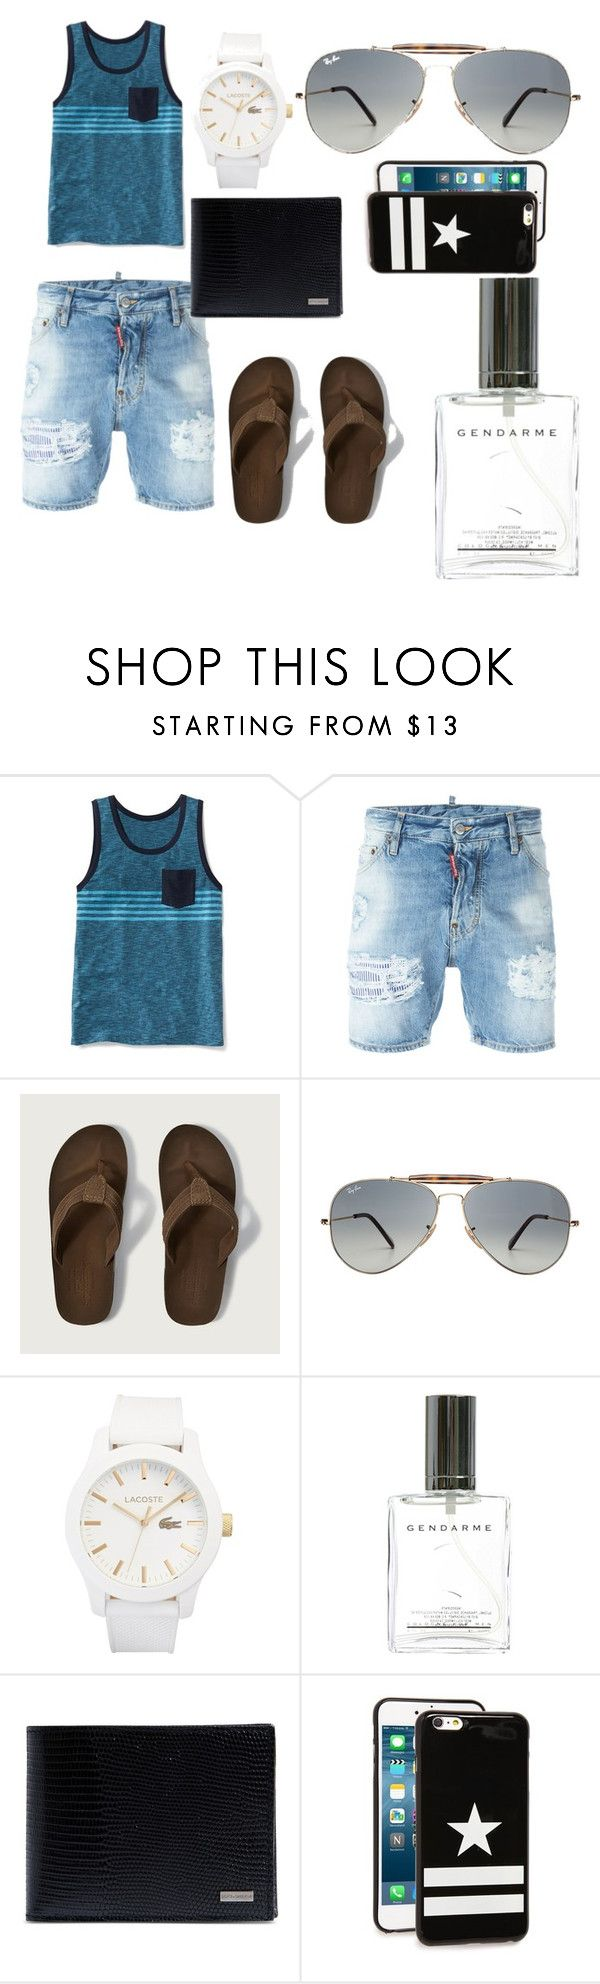 """guys summer/beach outfit"" by wealthy890xx ❤ liked on Polyvore featuring Old Navy, Dsquared2, Abercrombie & Fitch, Ray-Ban, Lacoste, Dolce&Gabbana, Givenchy, men's fashion and menswear"